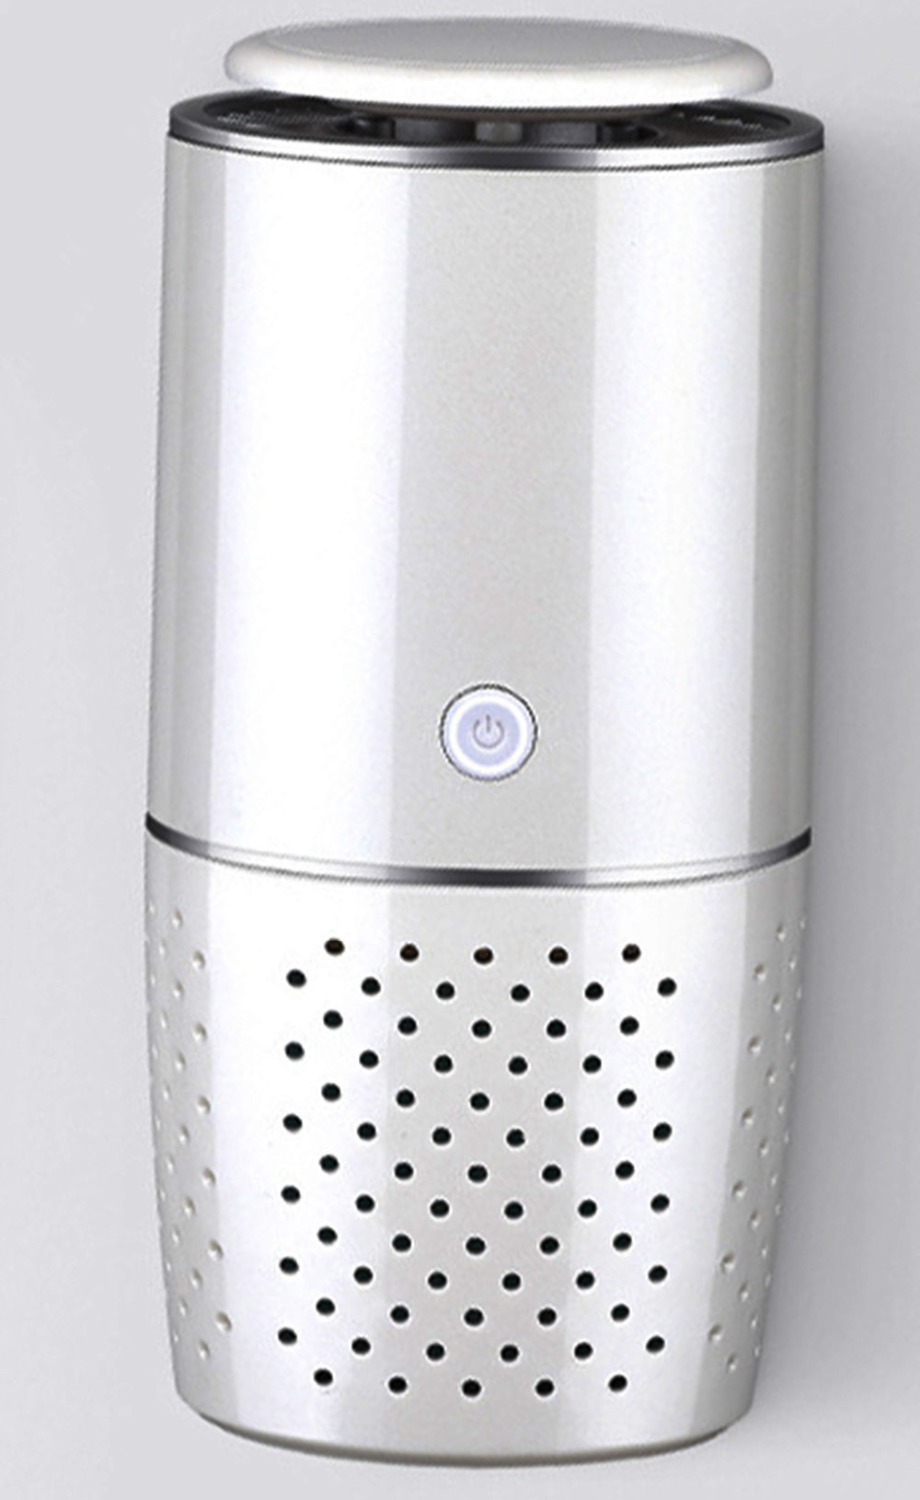 Air Purifier with True Hepa Filter, Odor Allergies Eliminator for Smokers, Smoke, Dust, Mold